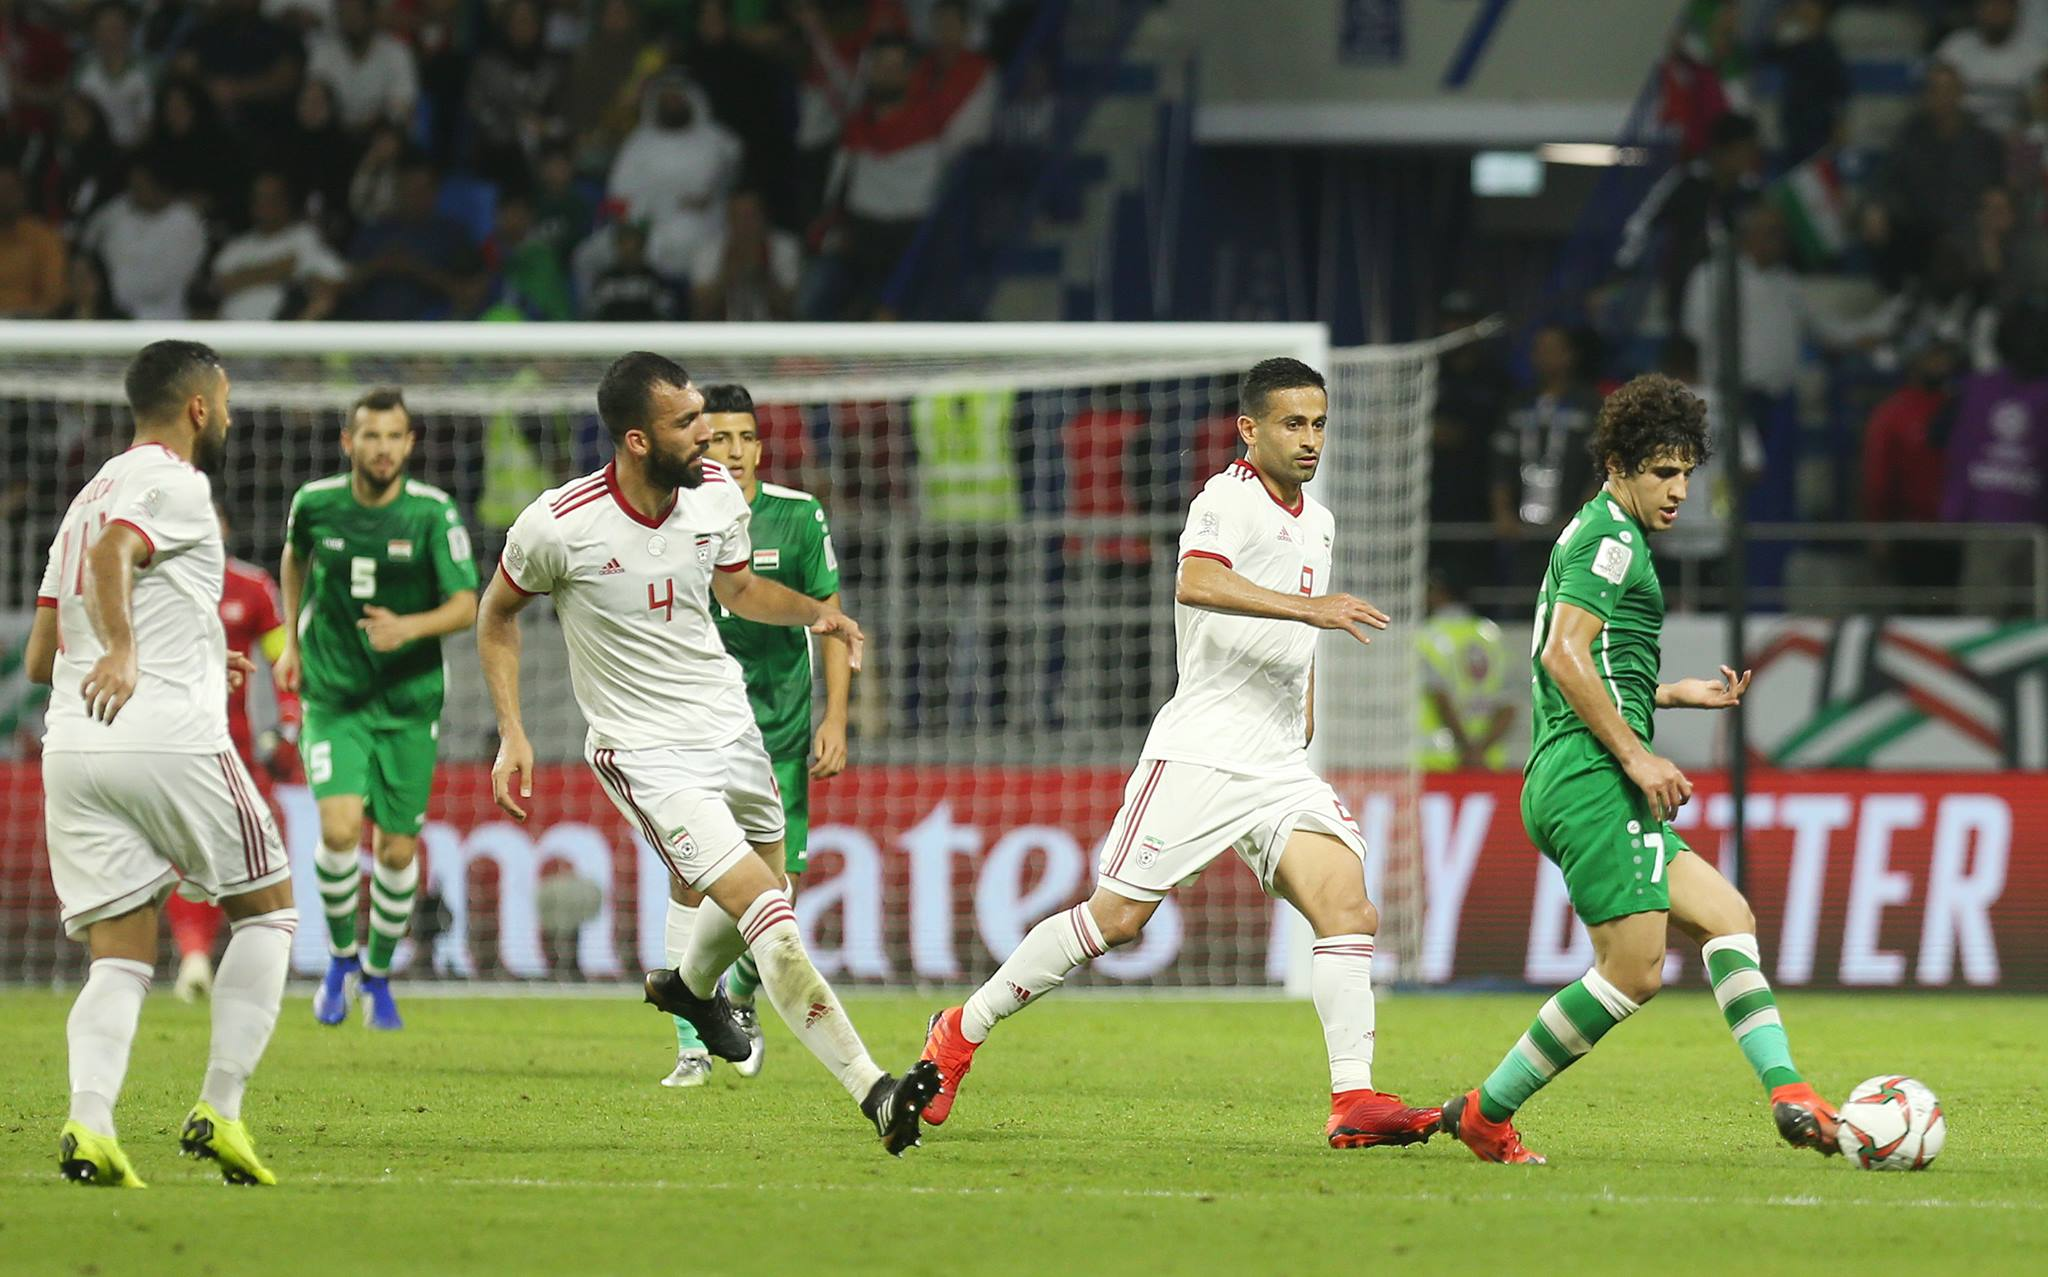 Iran v Iraq derby ends in stalemate as Lions finish second in Asian Cup Group D